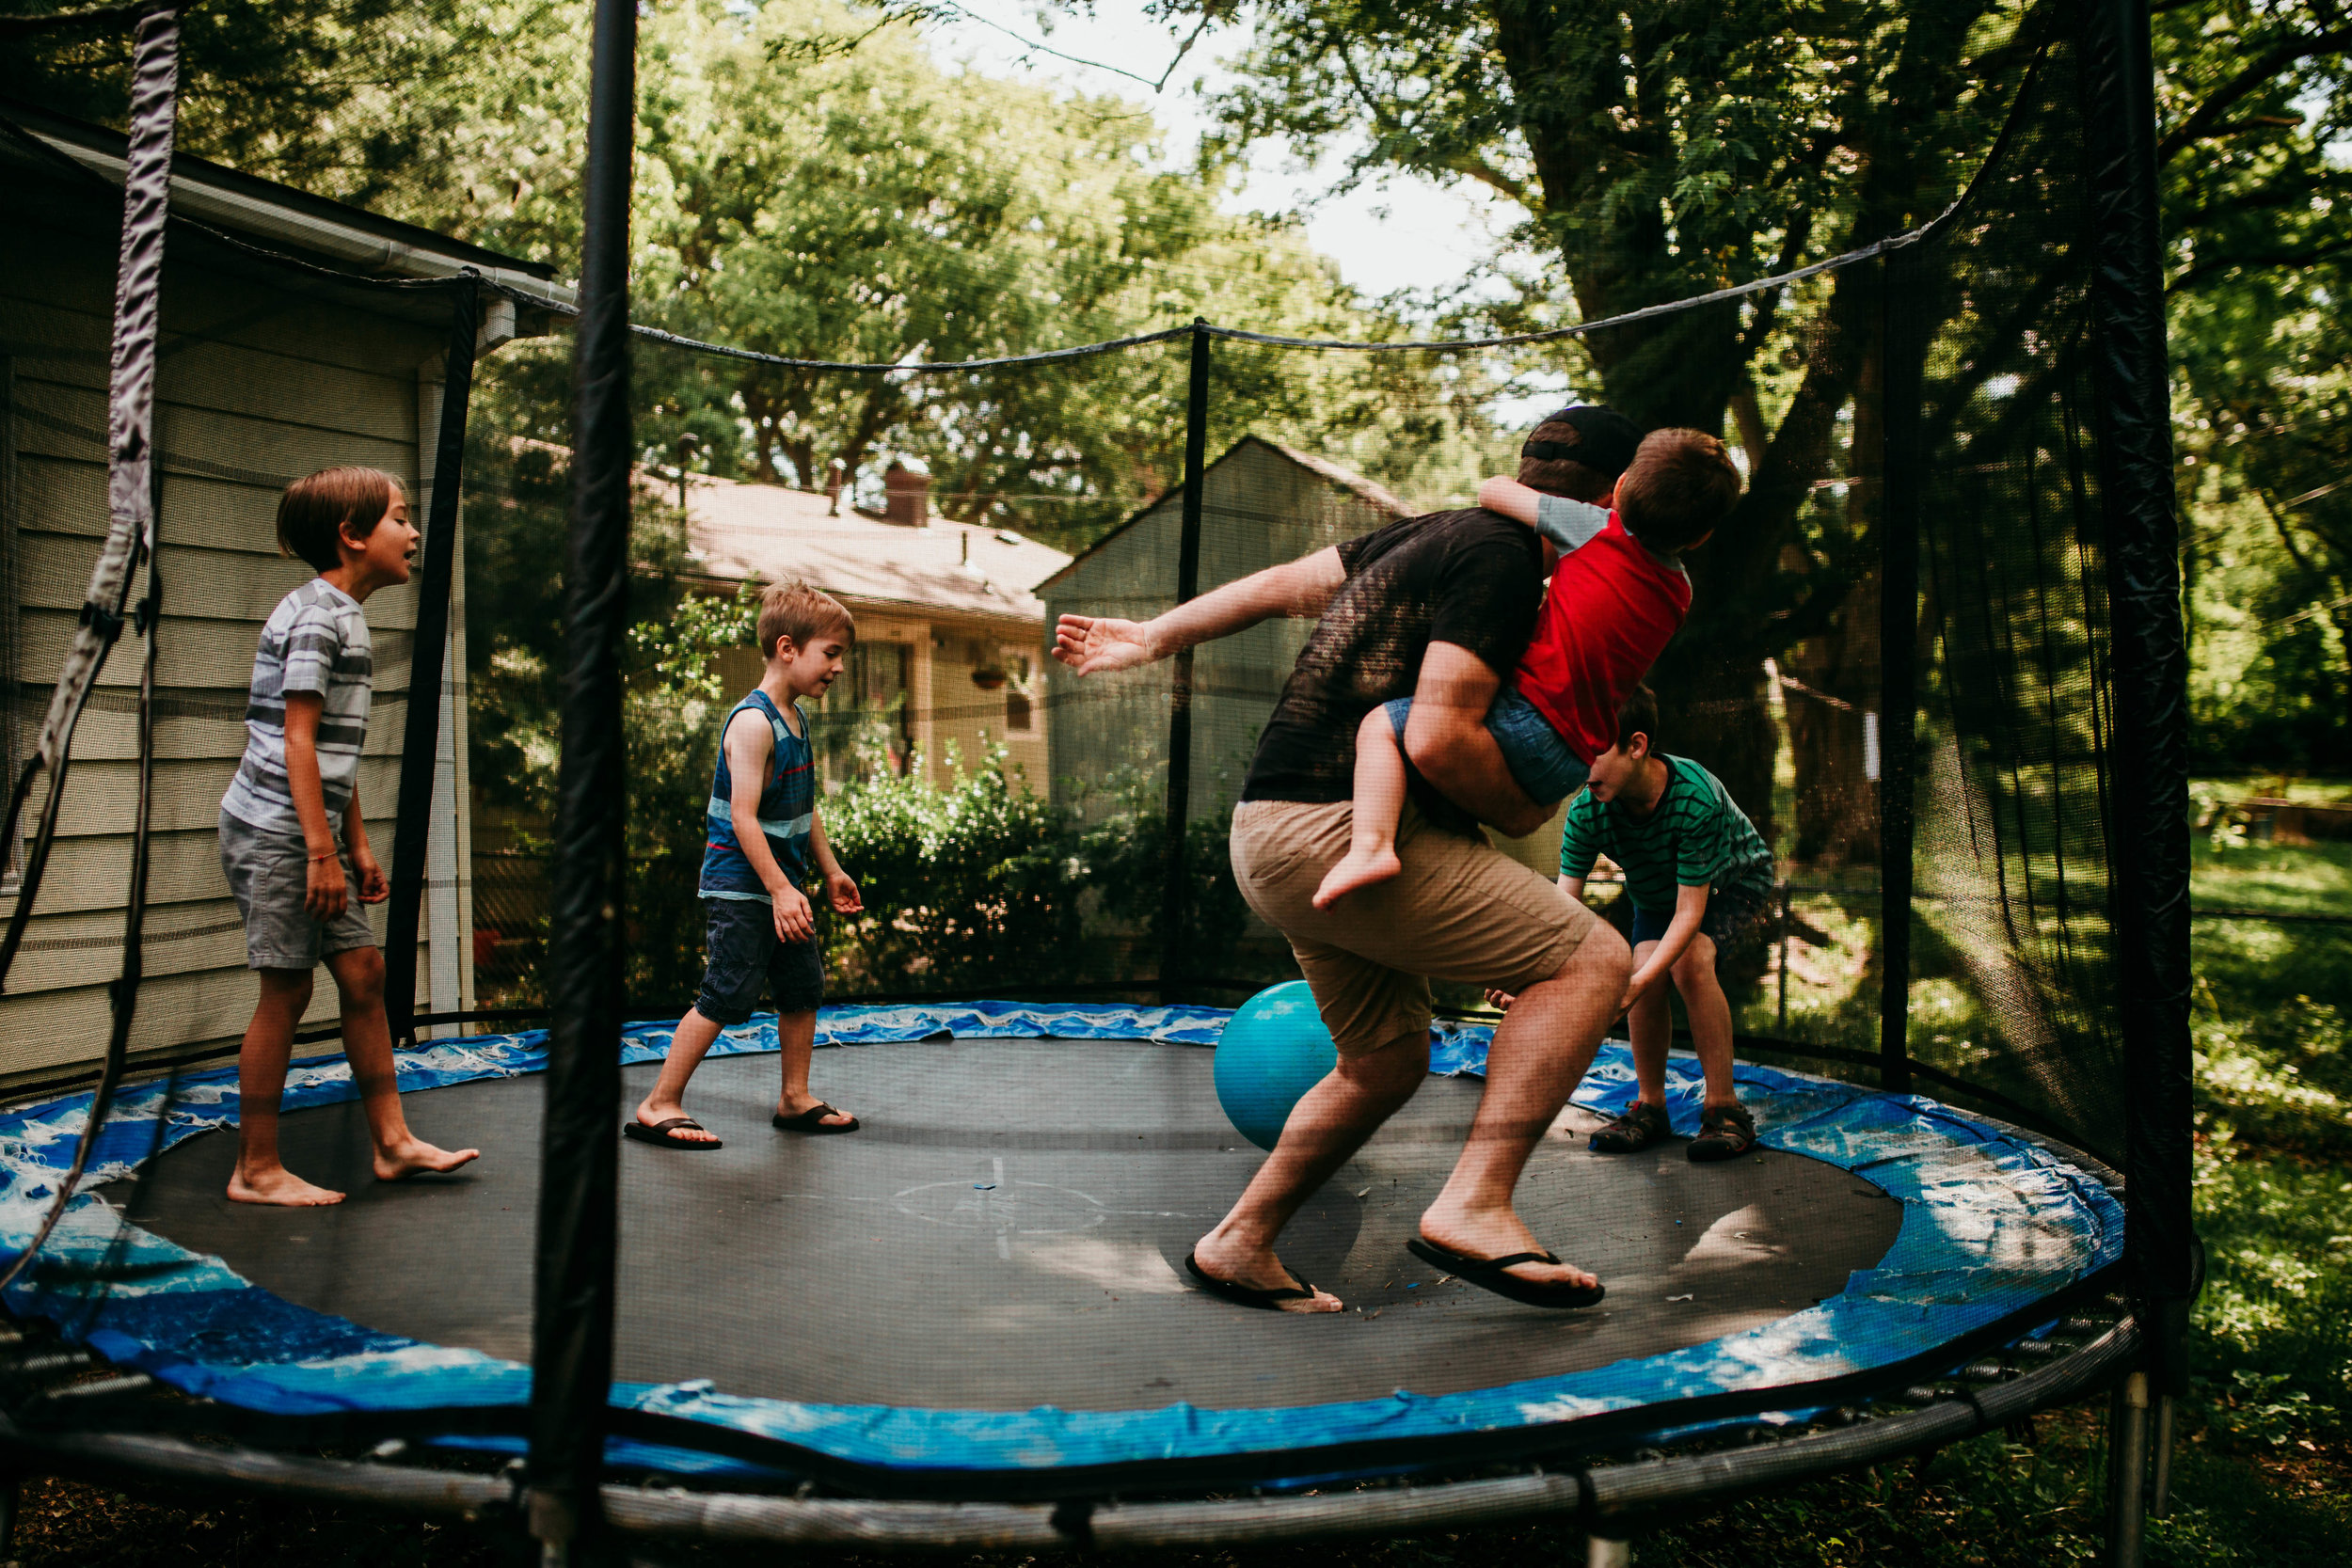 Dad and all the little boys play with a ball on the trampoline.   The Carter Family : Summer in the Backyard | Hannahill Photography | Kansas City, MO | Family photography lifestyle photographer | Wedding photographer Durham North Carolina Raleigh | Birth photographer Documentary